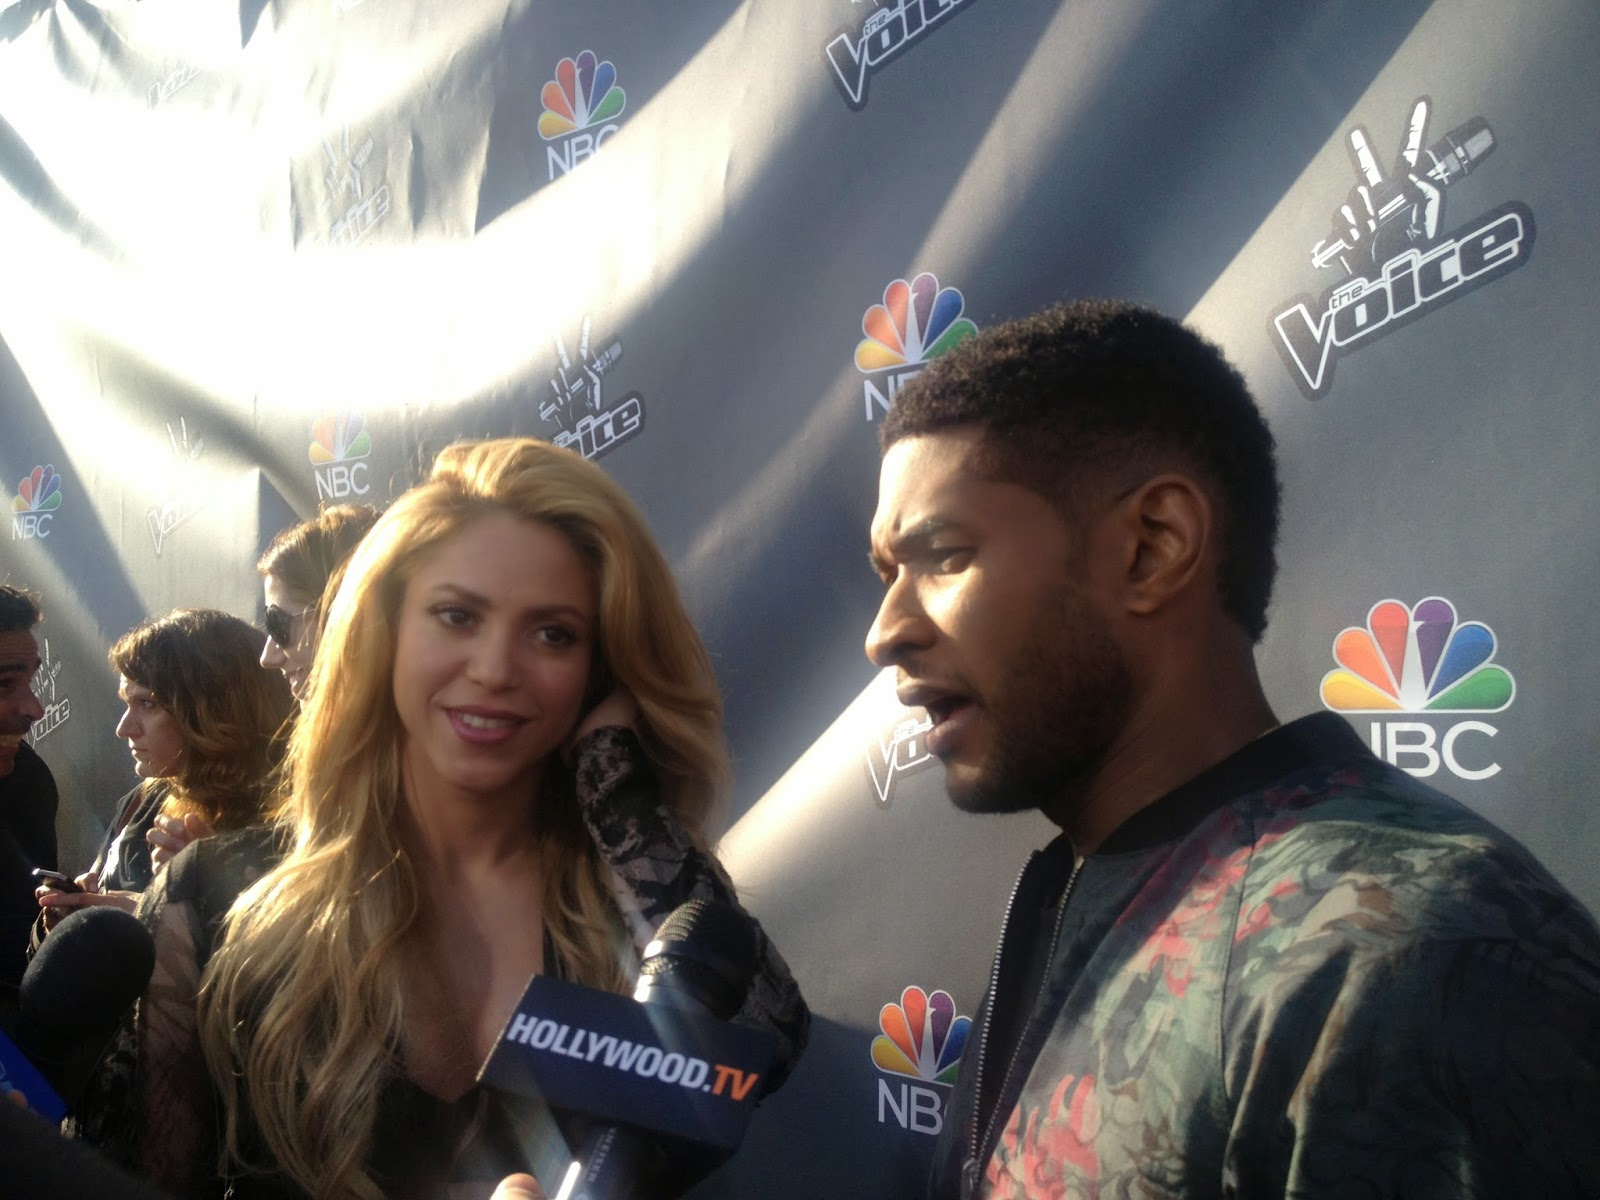 Shakira and Usher on The Voice Red Carpet